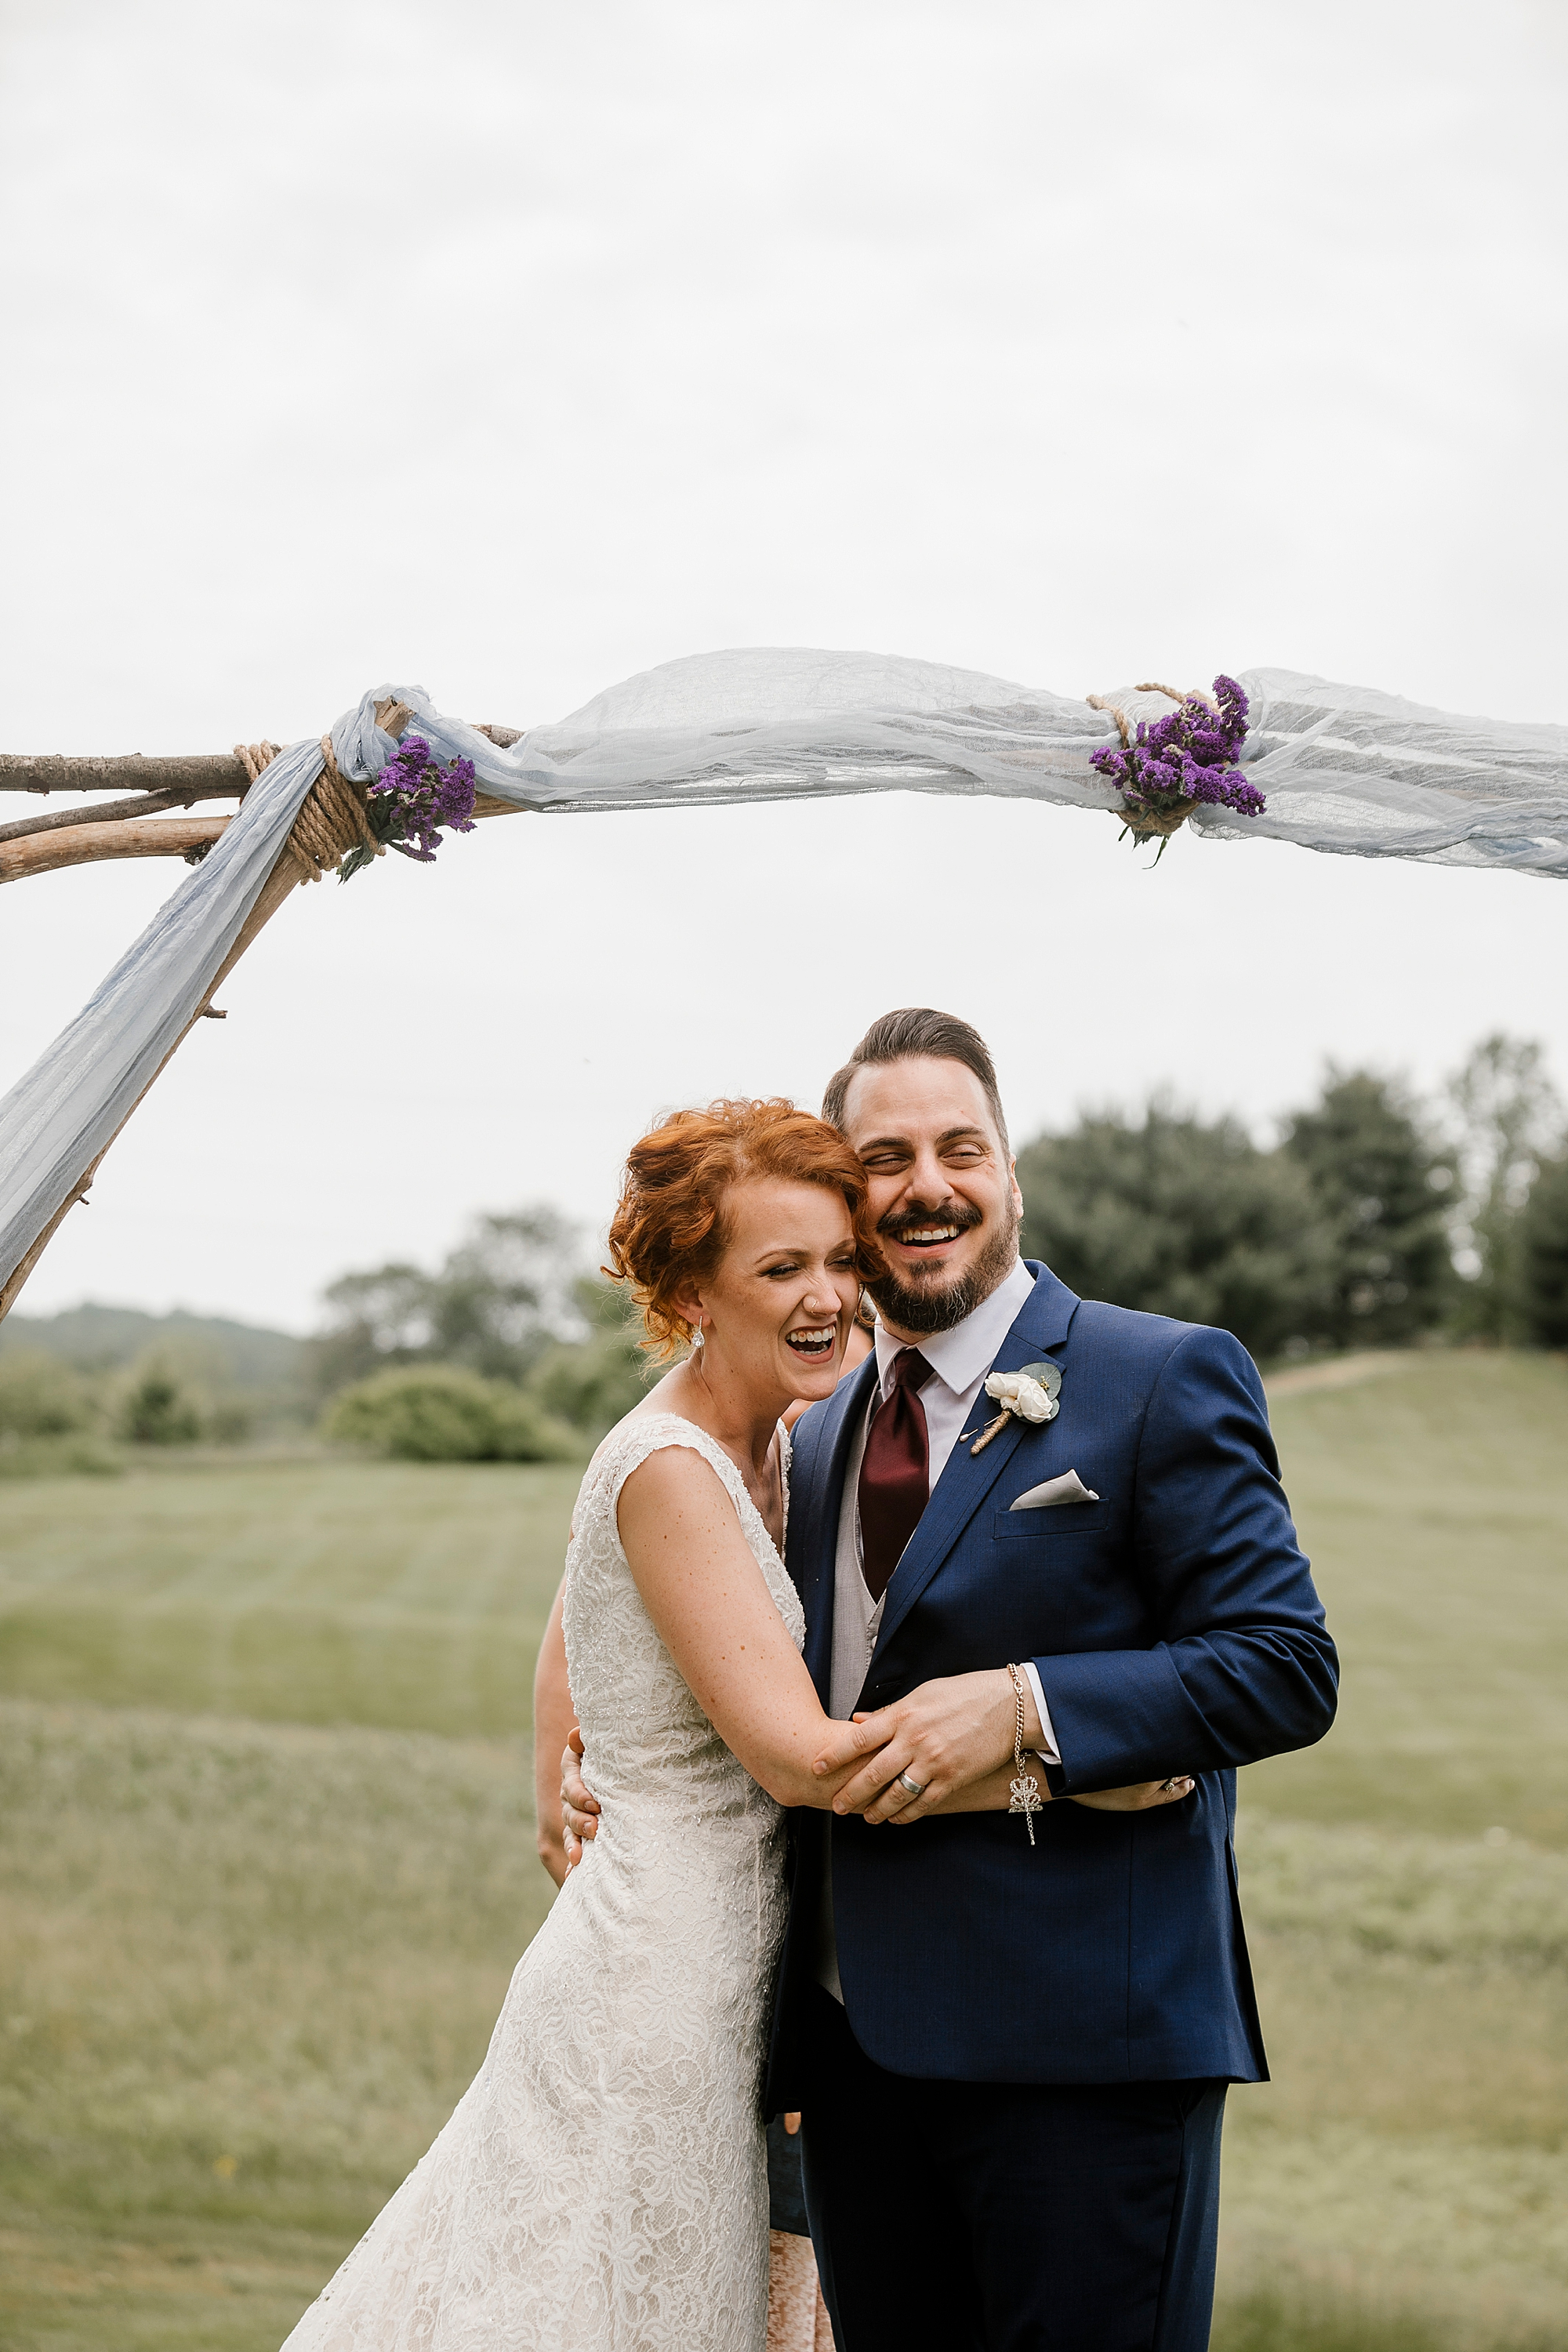 Megan and Daniel_Northbrook_Marketplace_Longwood_Gardens_Chester_County_Unionville_Love_by_Joe_Mac_Wedding_photography__0088.jpg